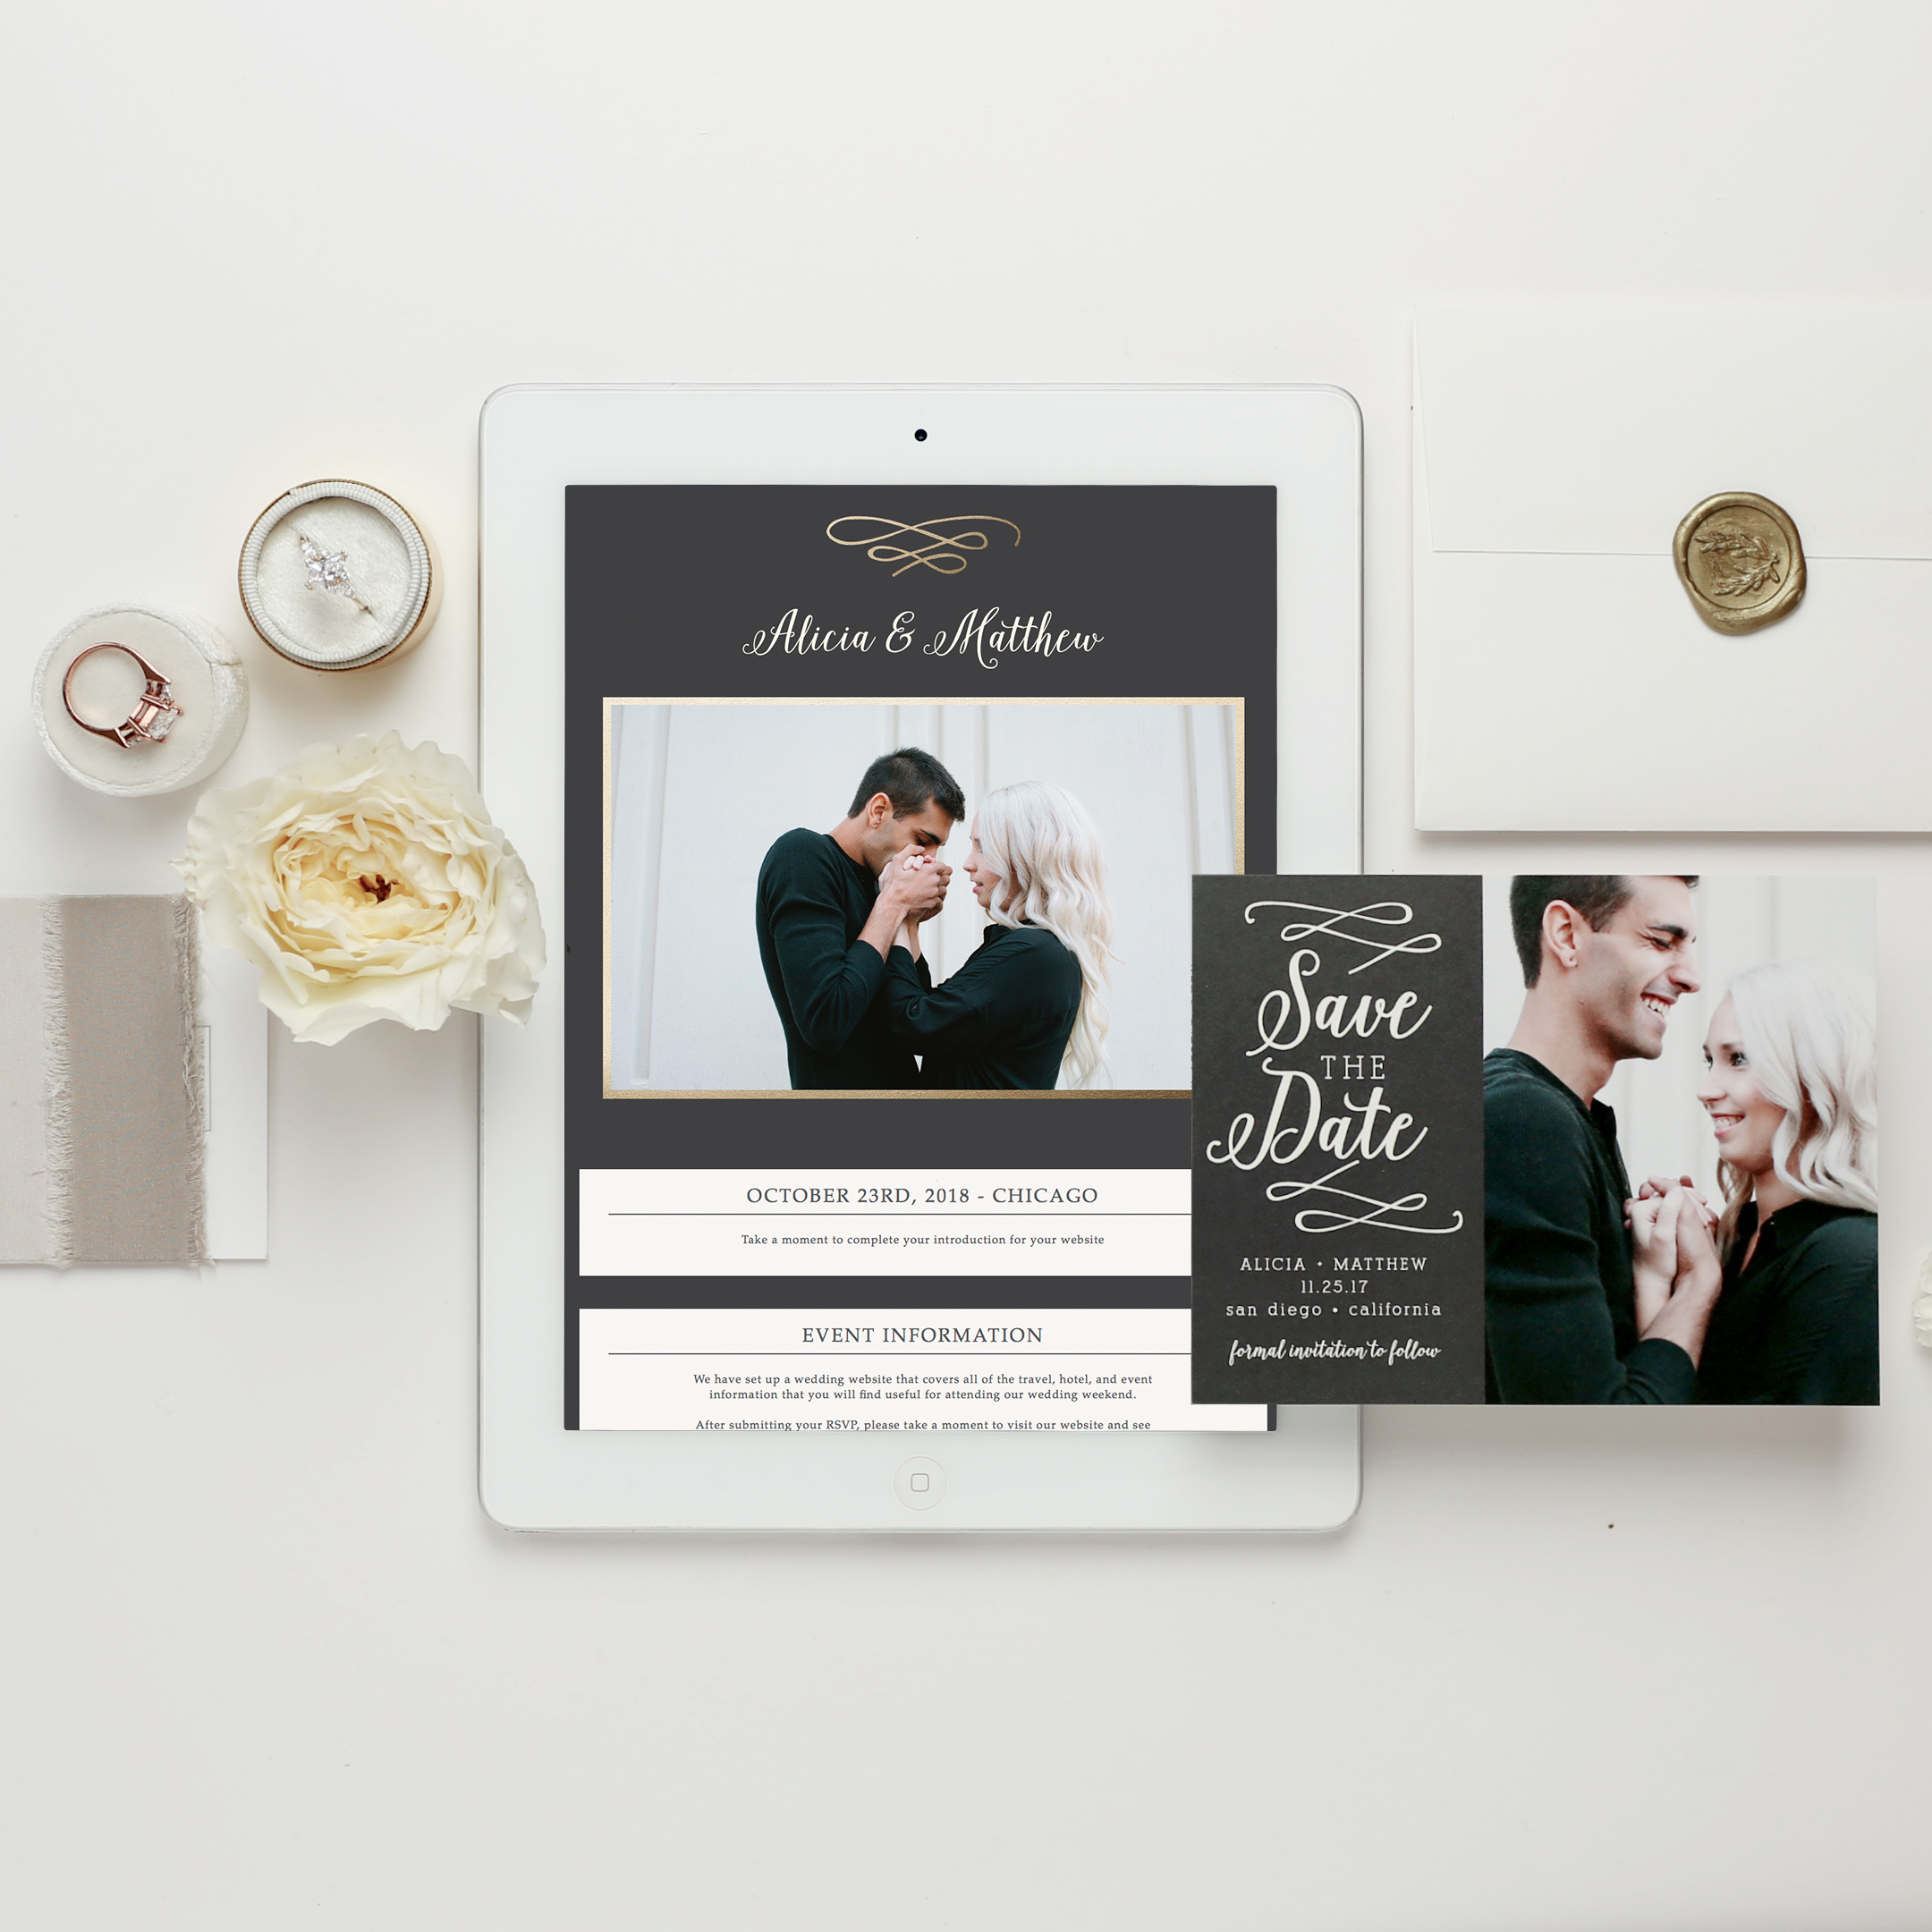 Basic Invite – The Best Online Site For Invitation Designs and Guestbook Wedding